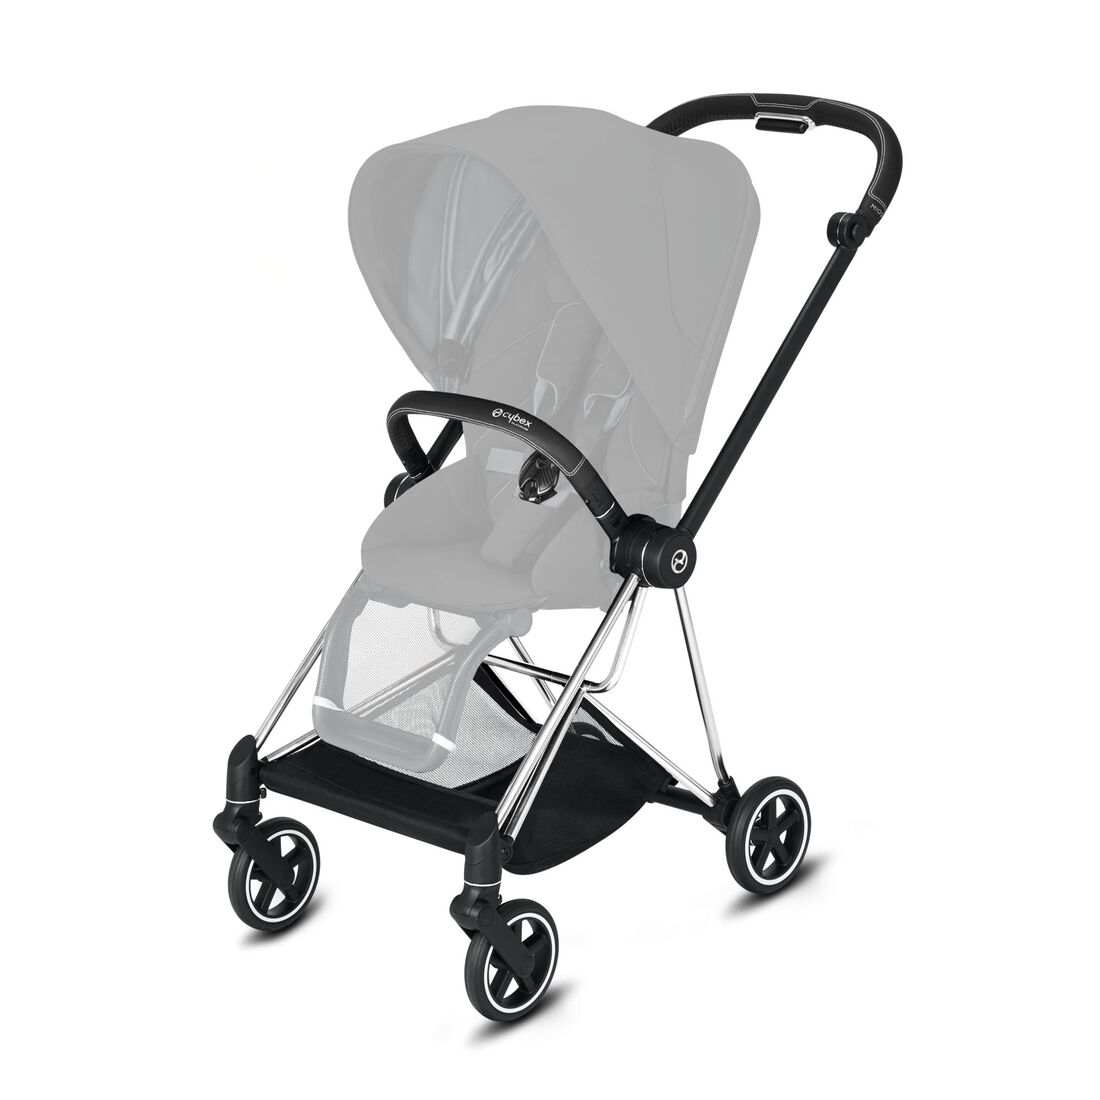 CYBEX Mios Frame - Chrome With Black Details in Chrome With Black Details large image number 2